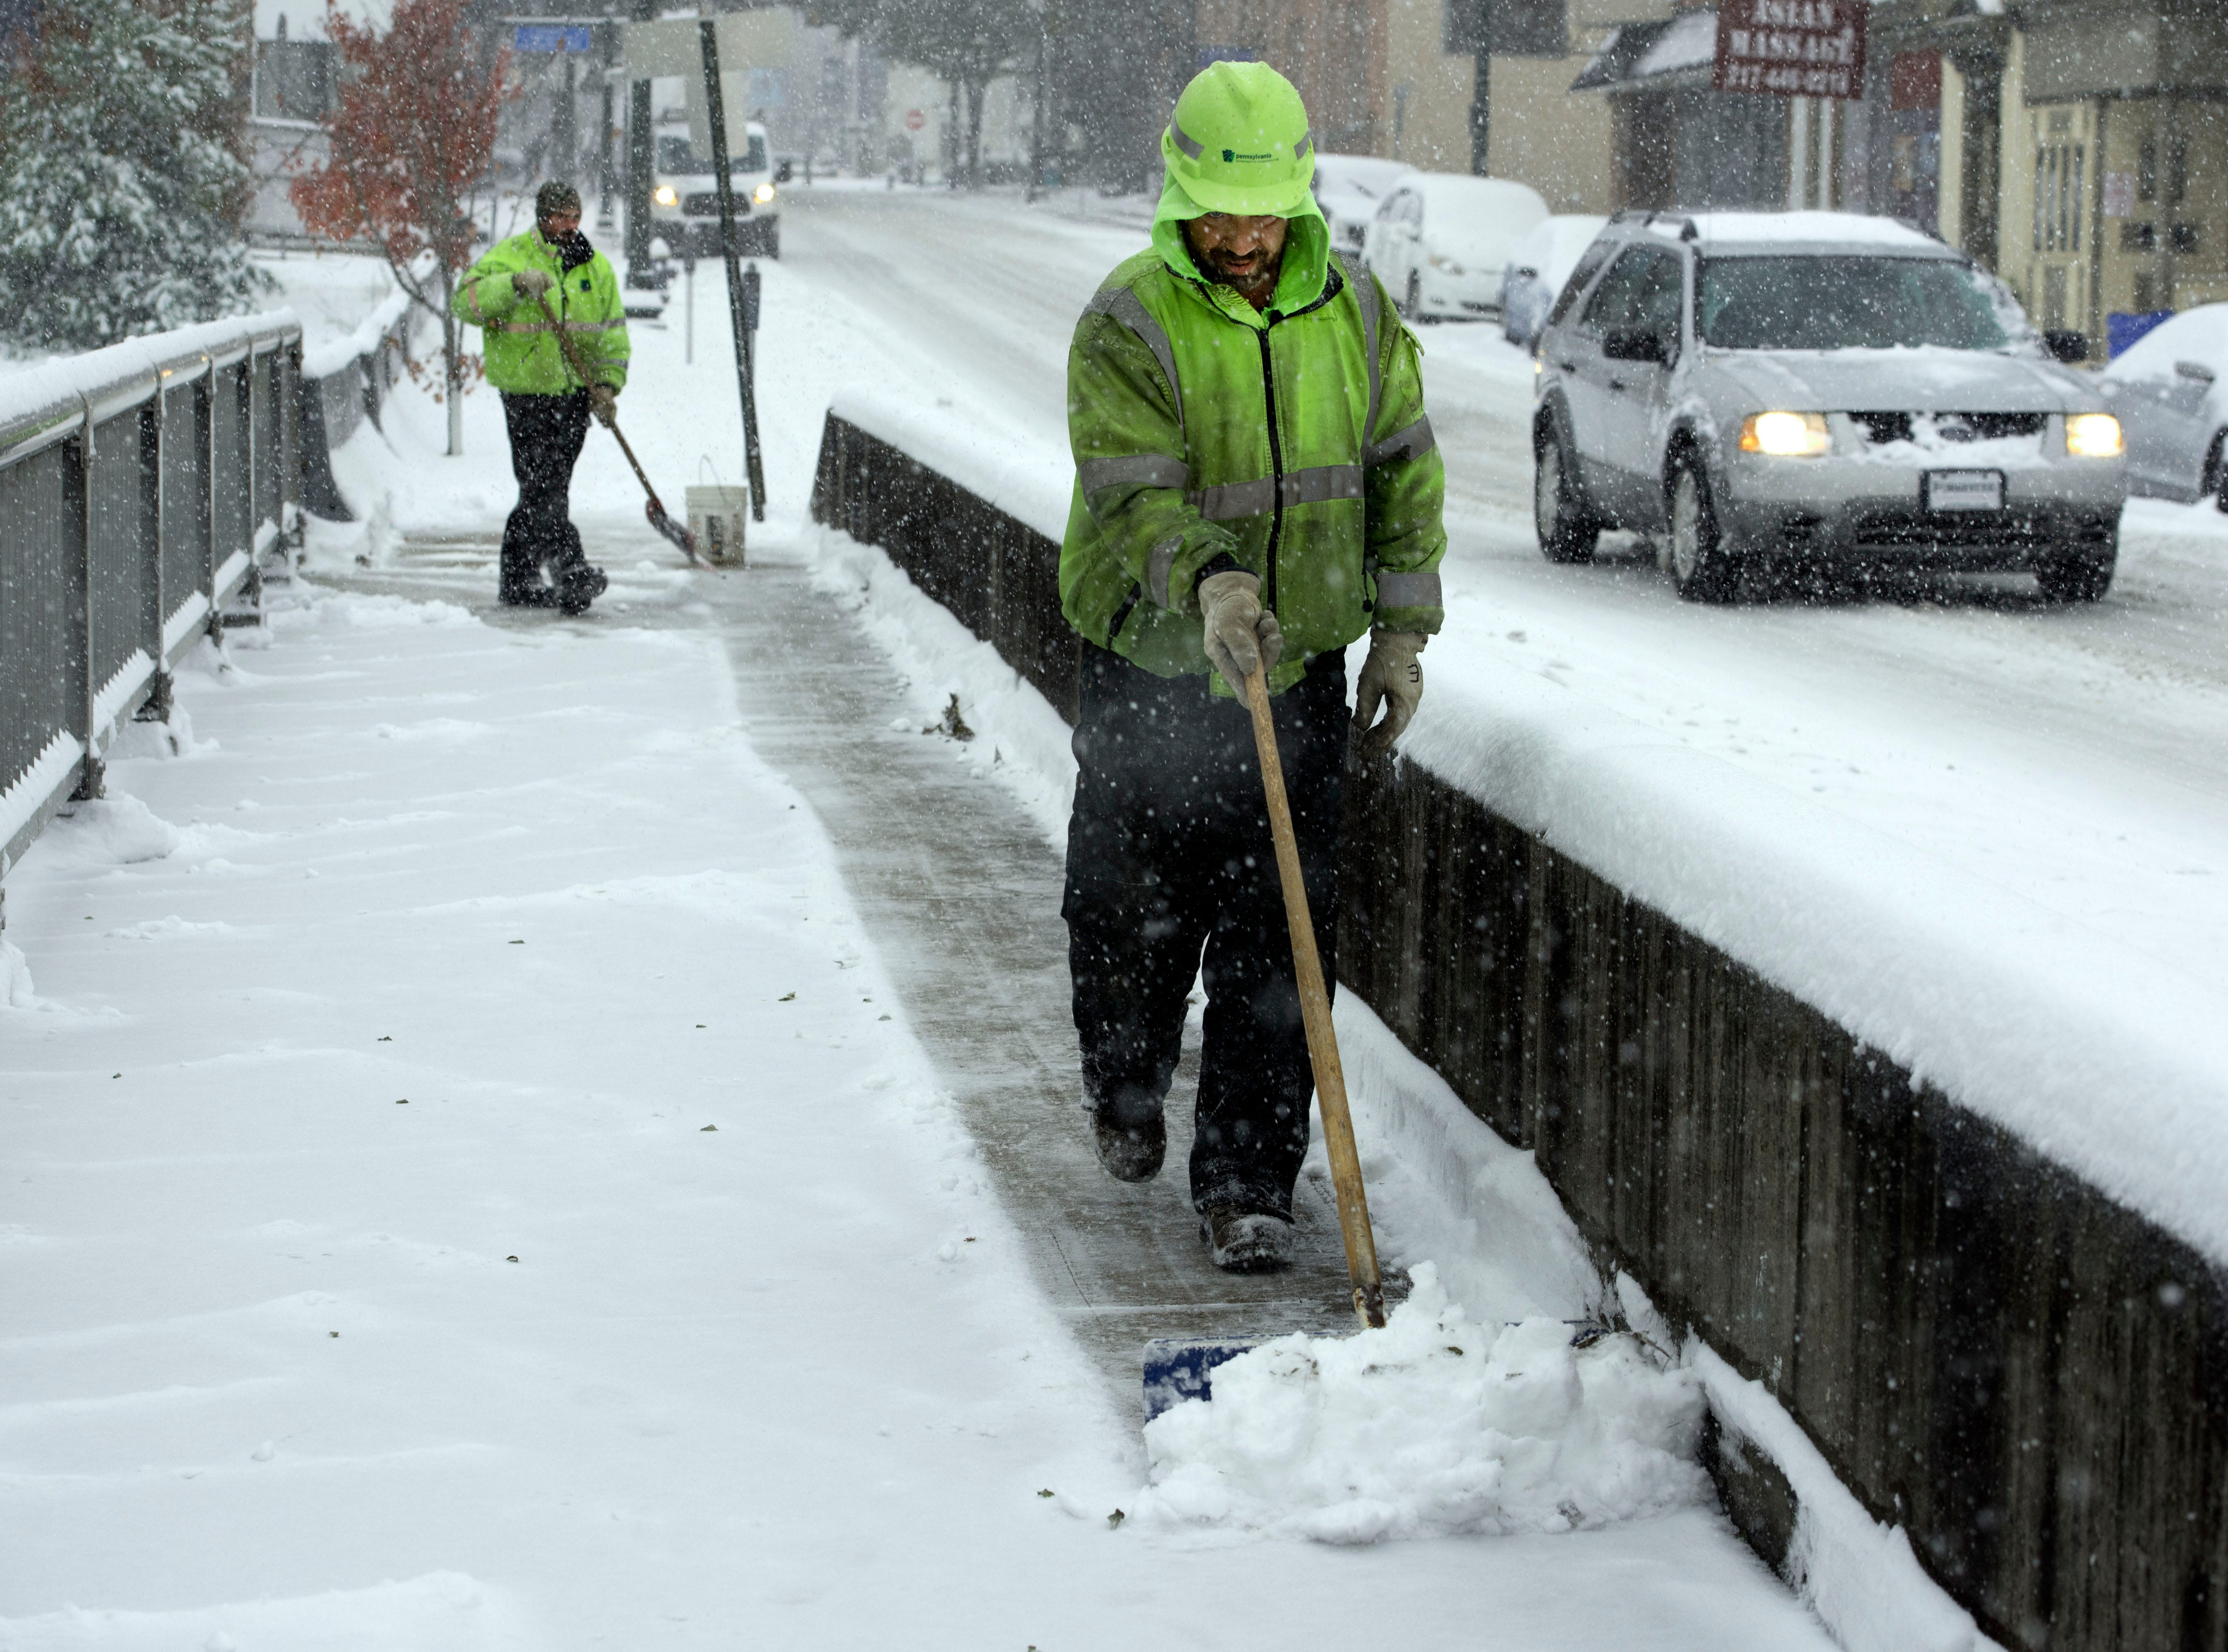 PennDOT employees clear snsow off bridge sidewalks along Lincoln Way East, Chambersburg. A winter storm hit Franklin County on Thursday morning, November 15, 2018.